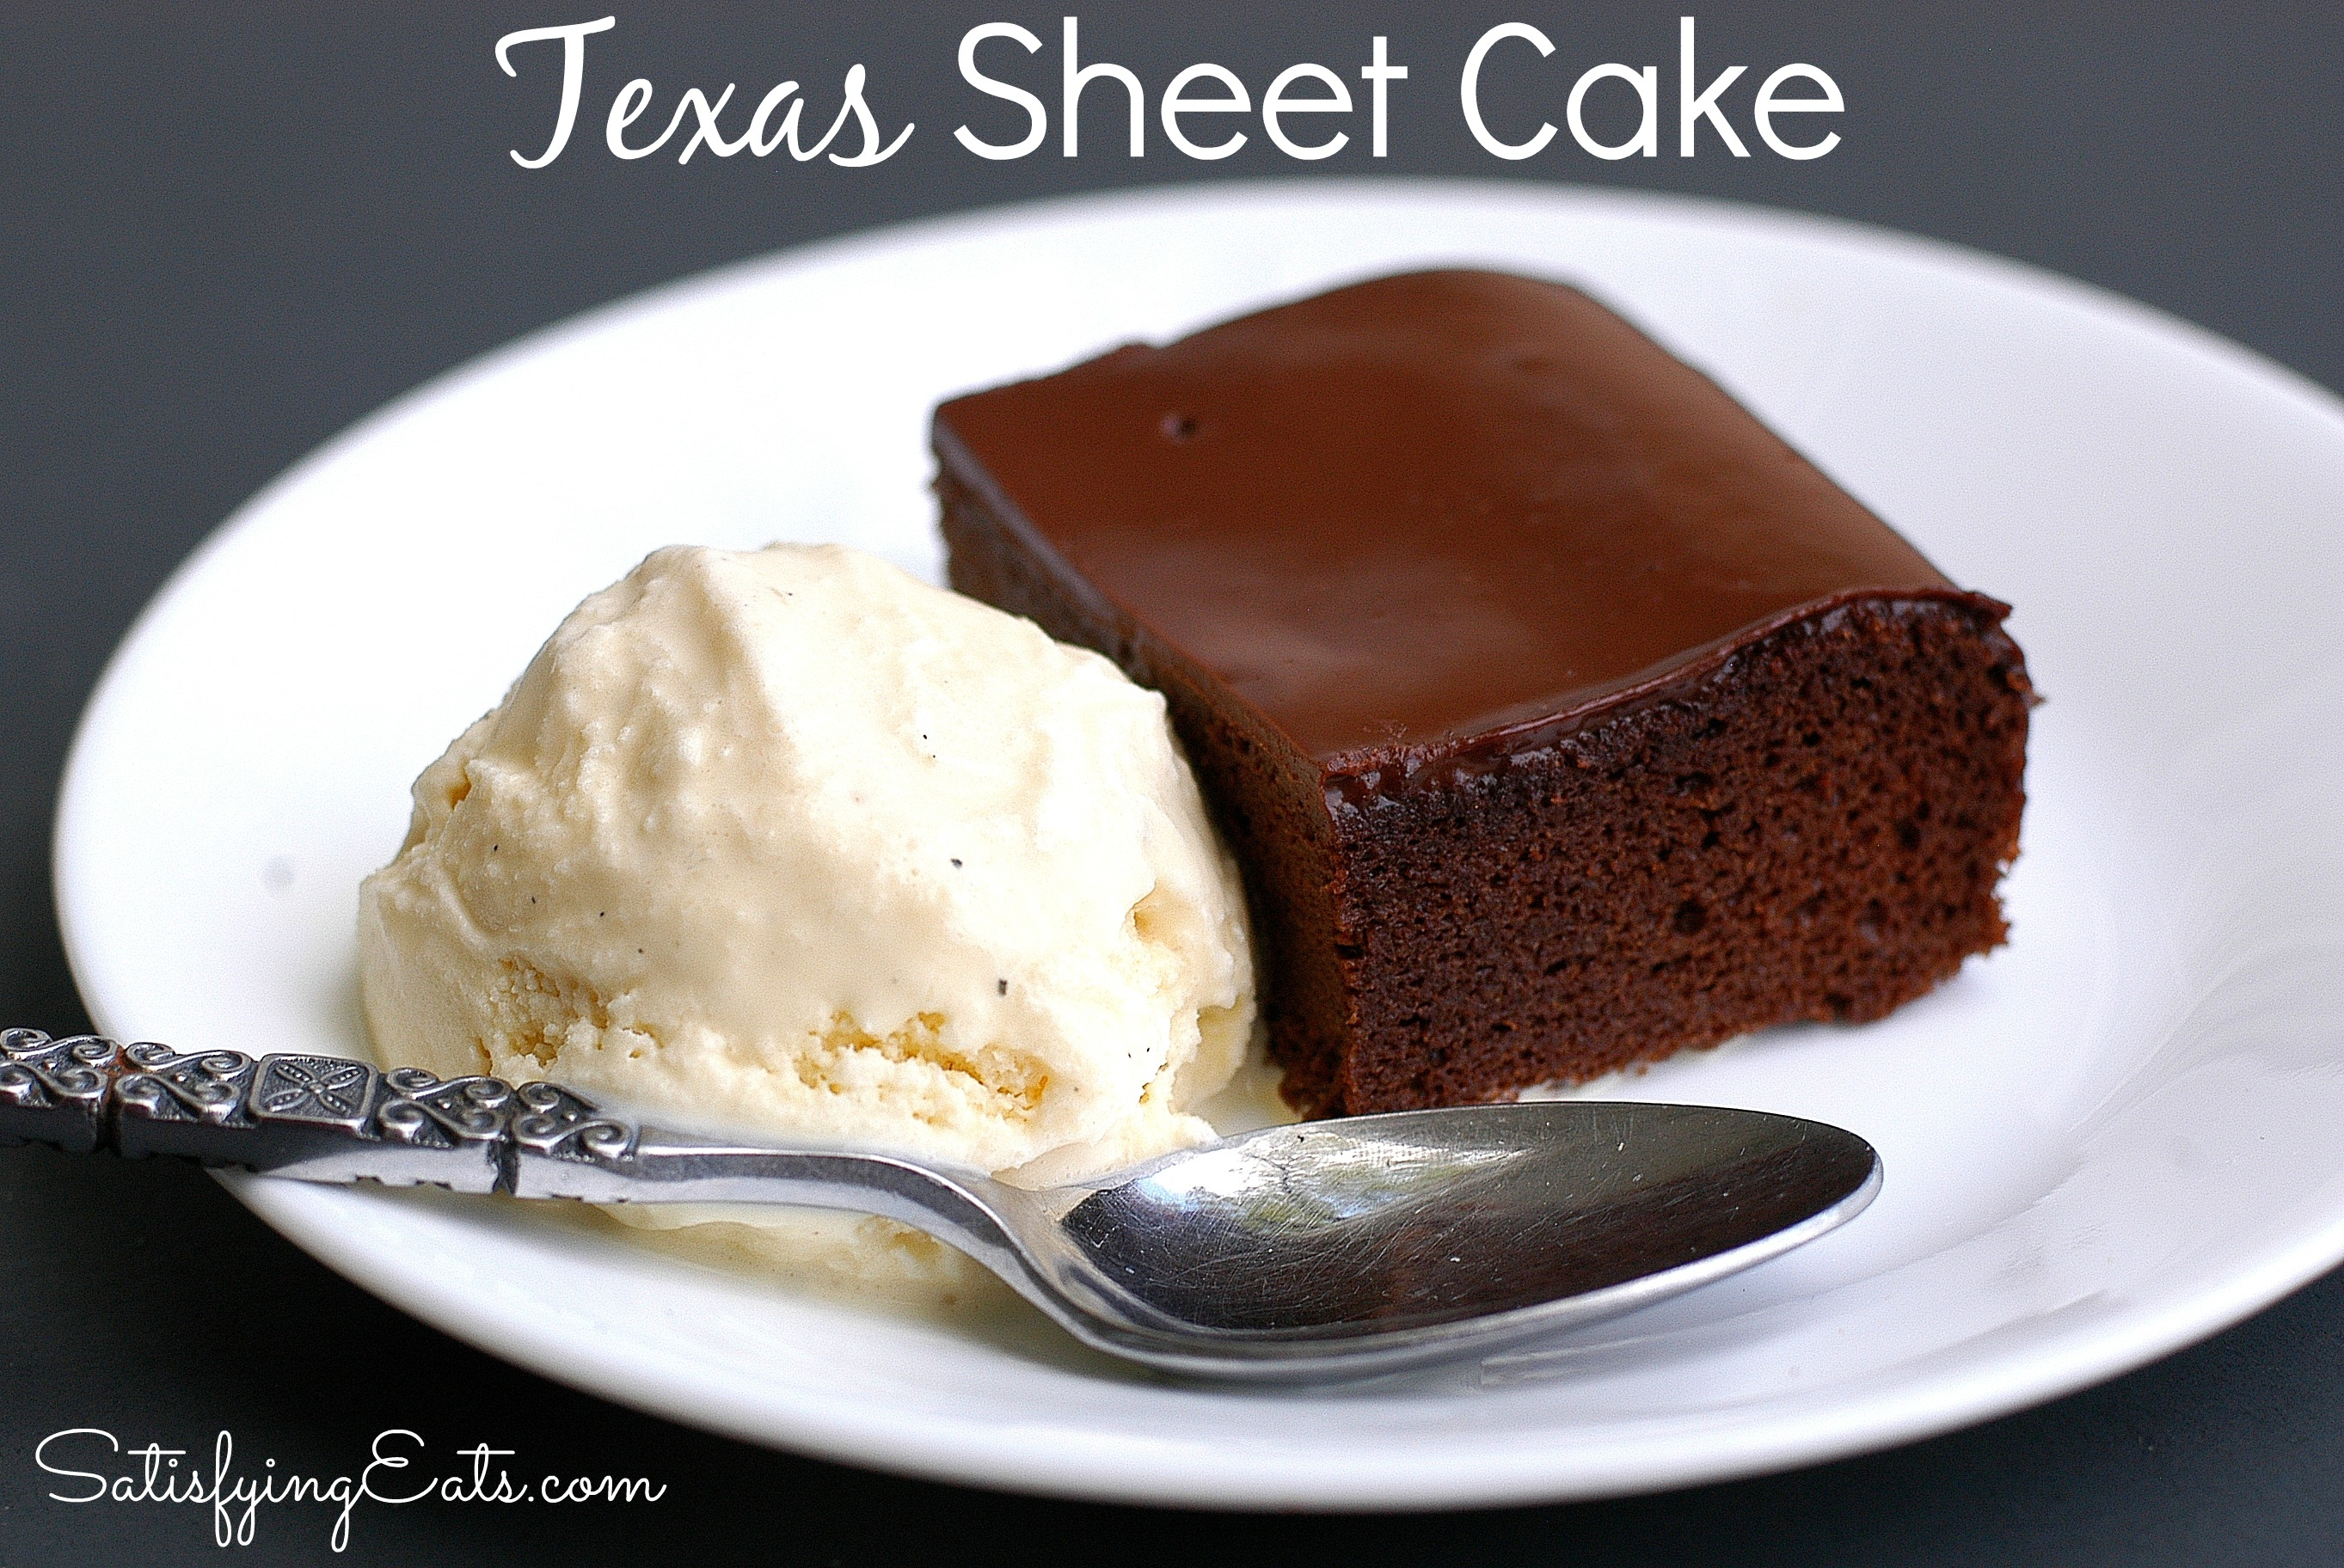 Banana Texas Sheet Cake